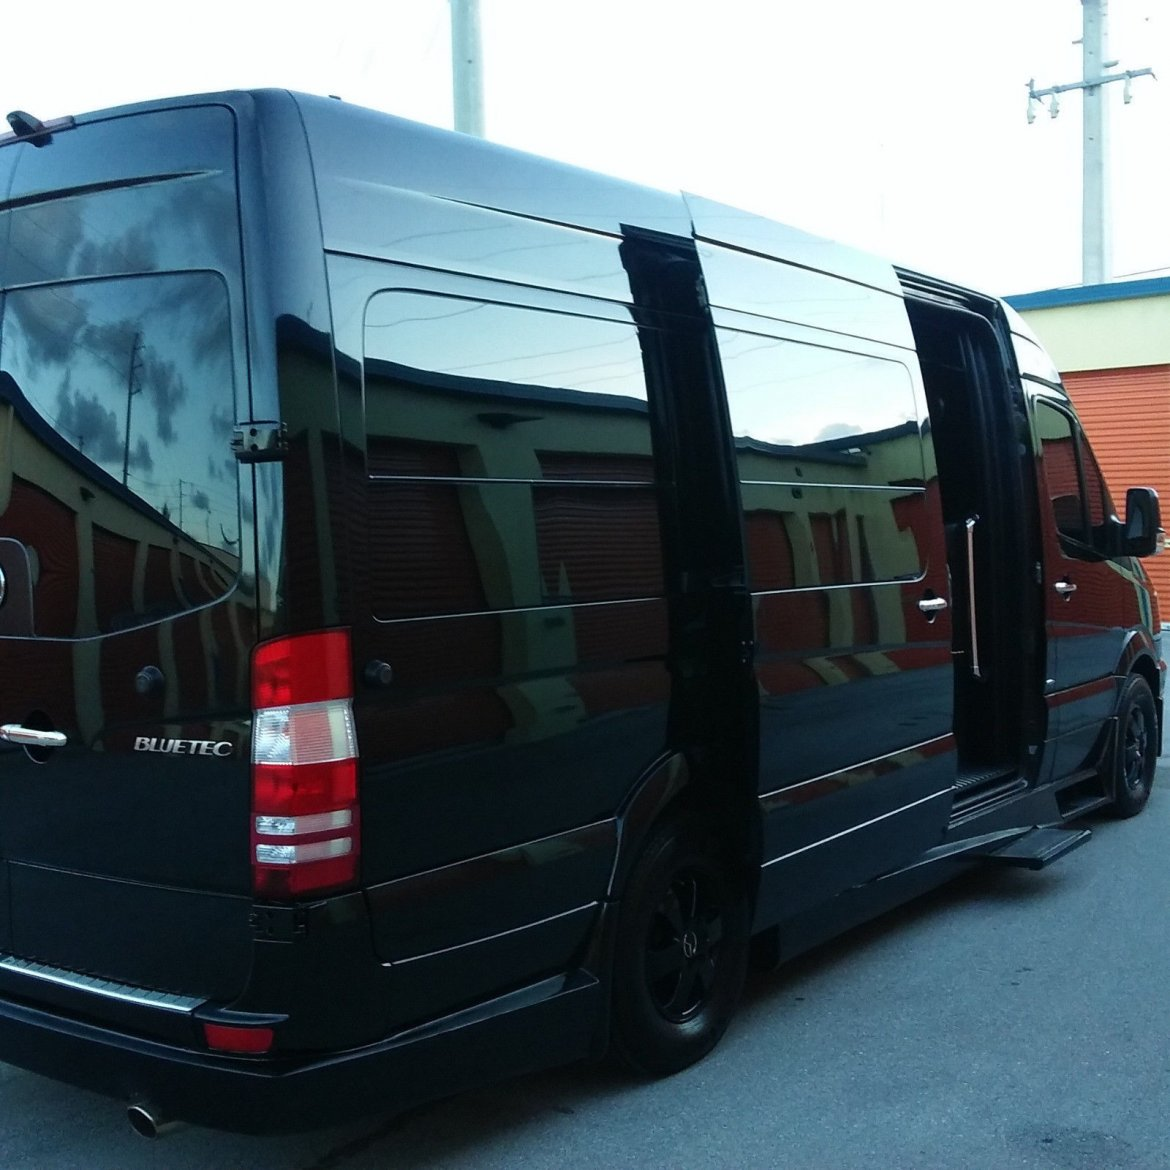 Used 2011 mercedes benz sprinter for sale ws 11392 we for Mercede benz for sale